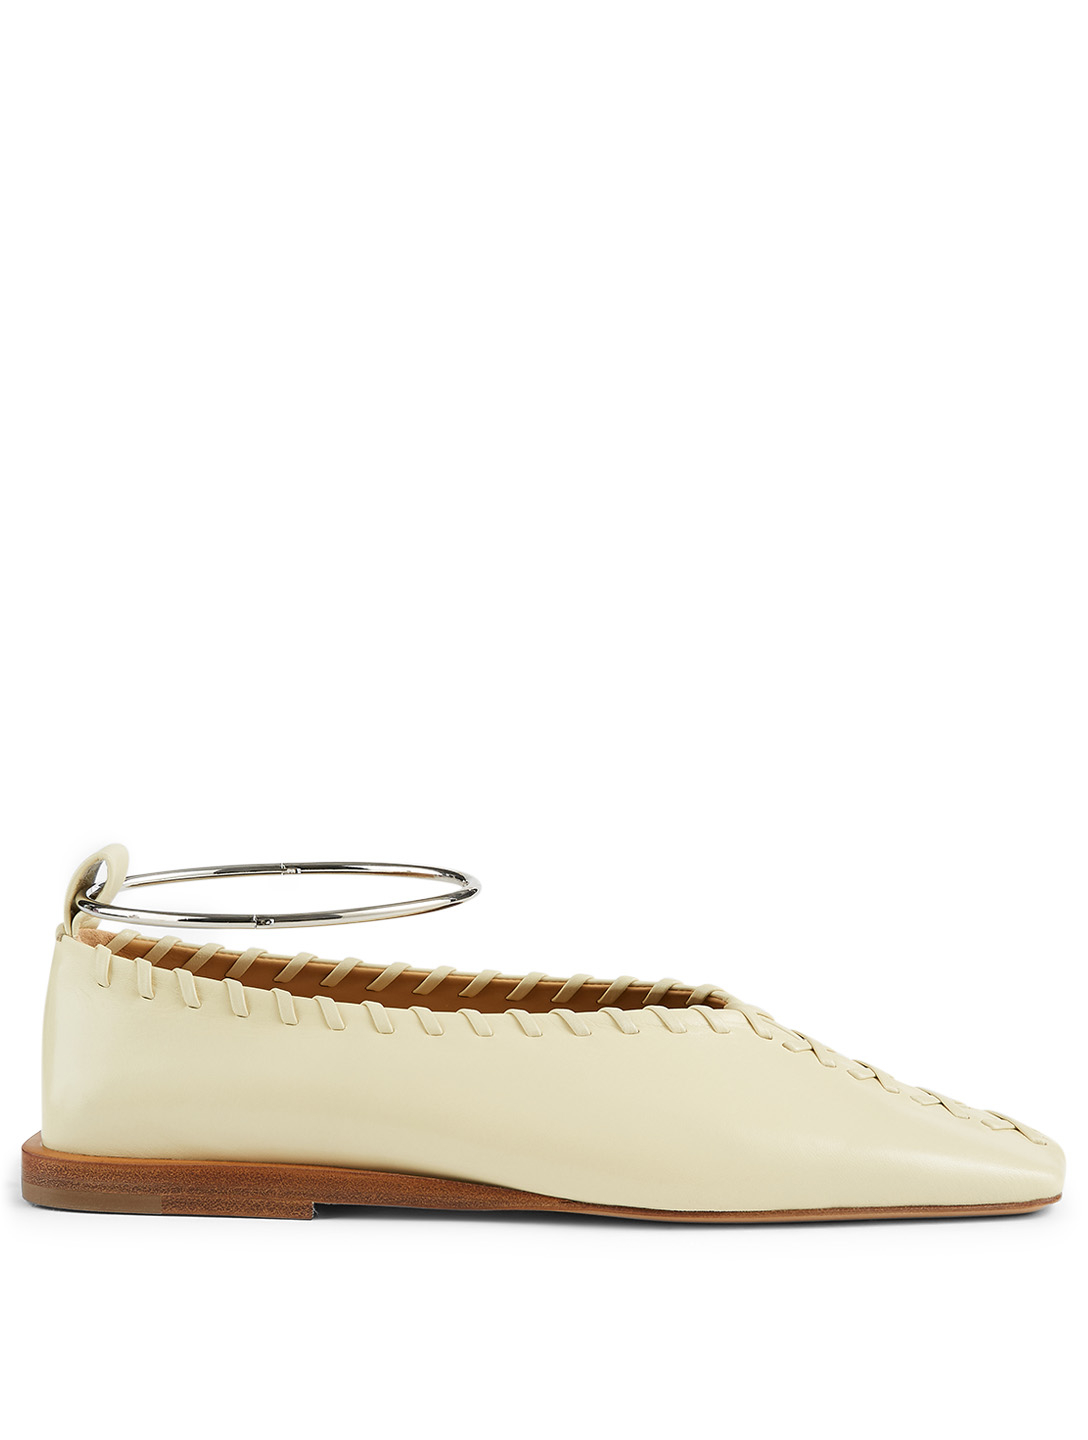 JIL SANDER Whipstitched Leather Flats With Anklet Women's Beige